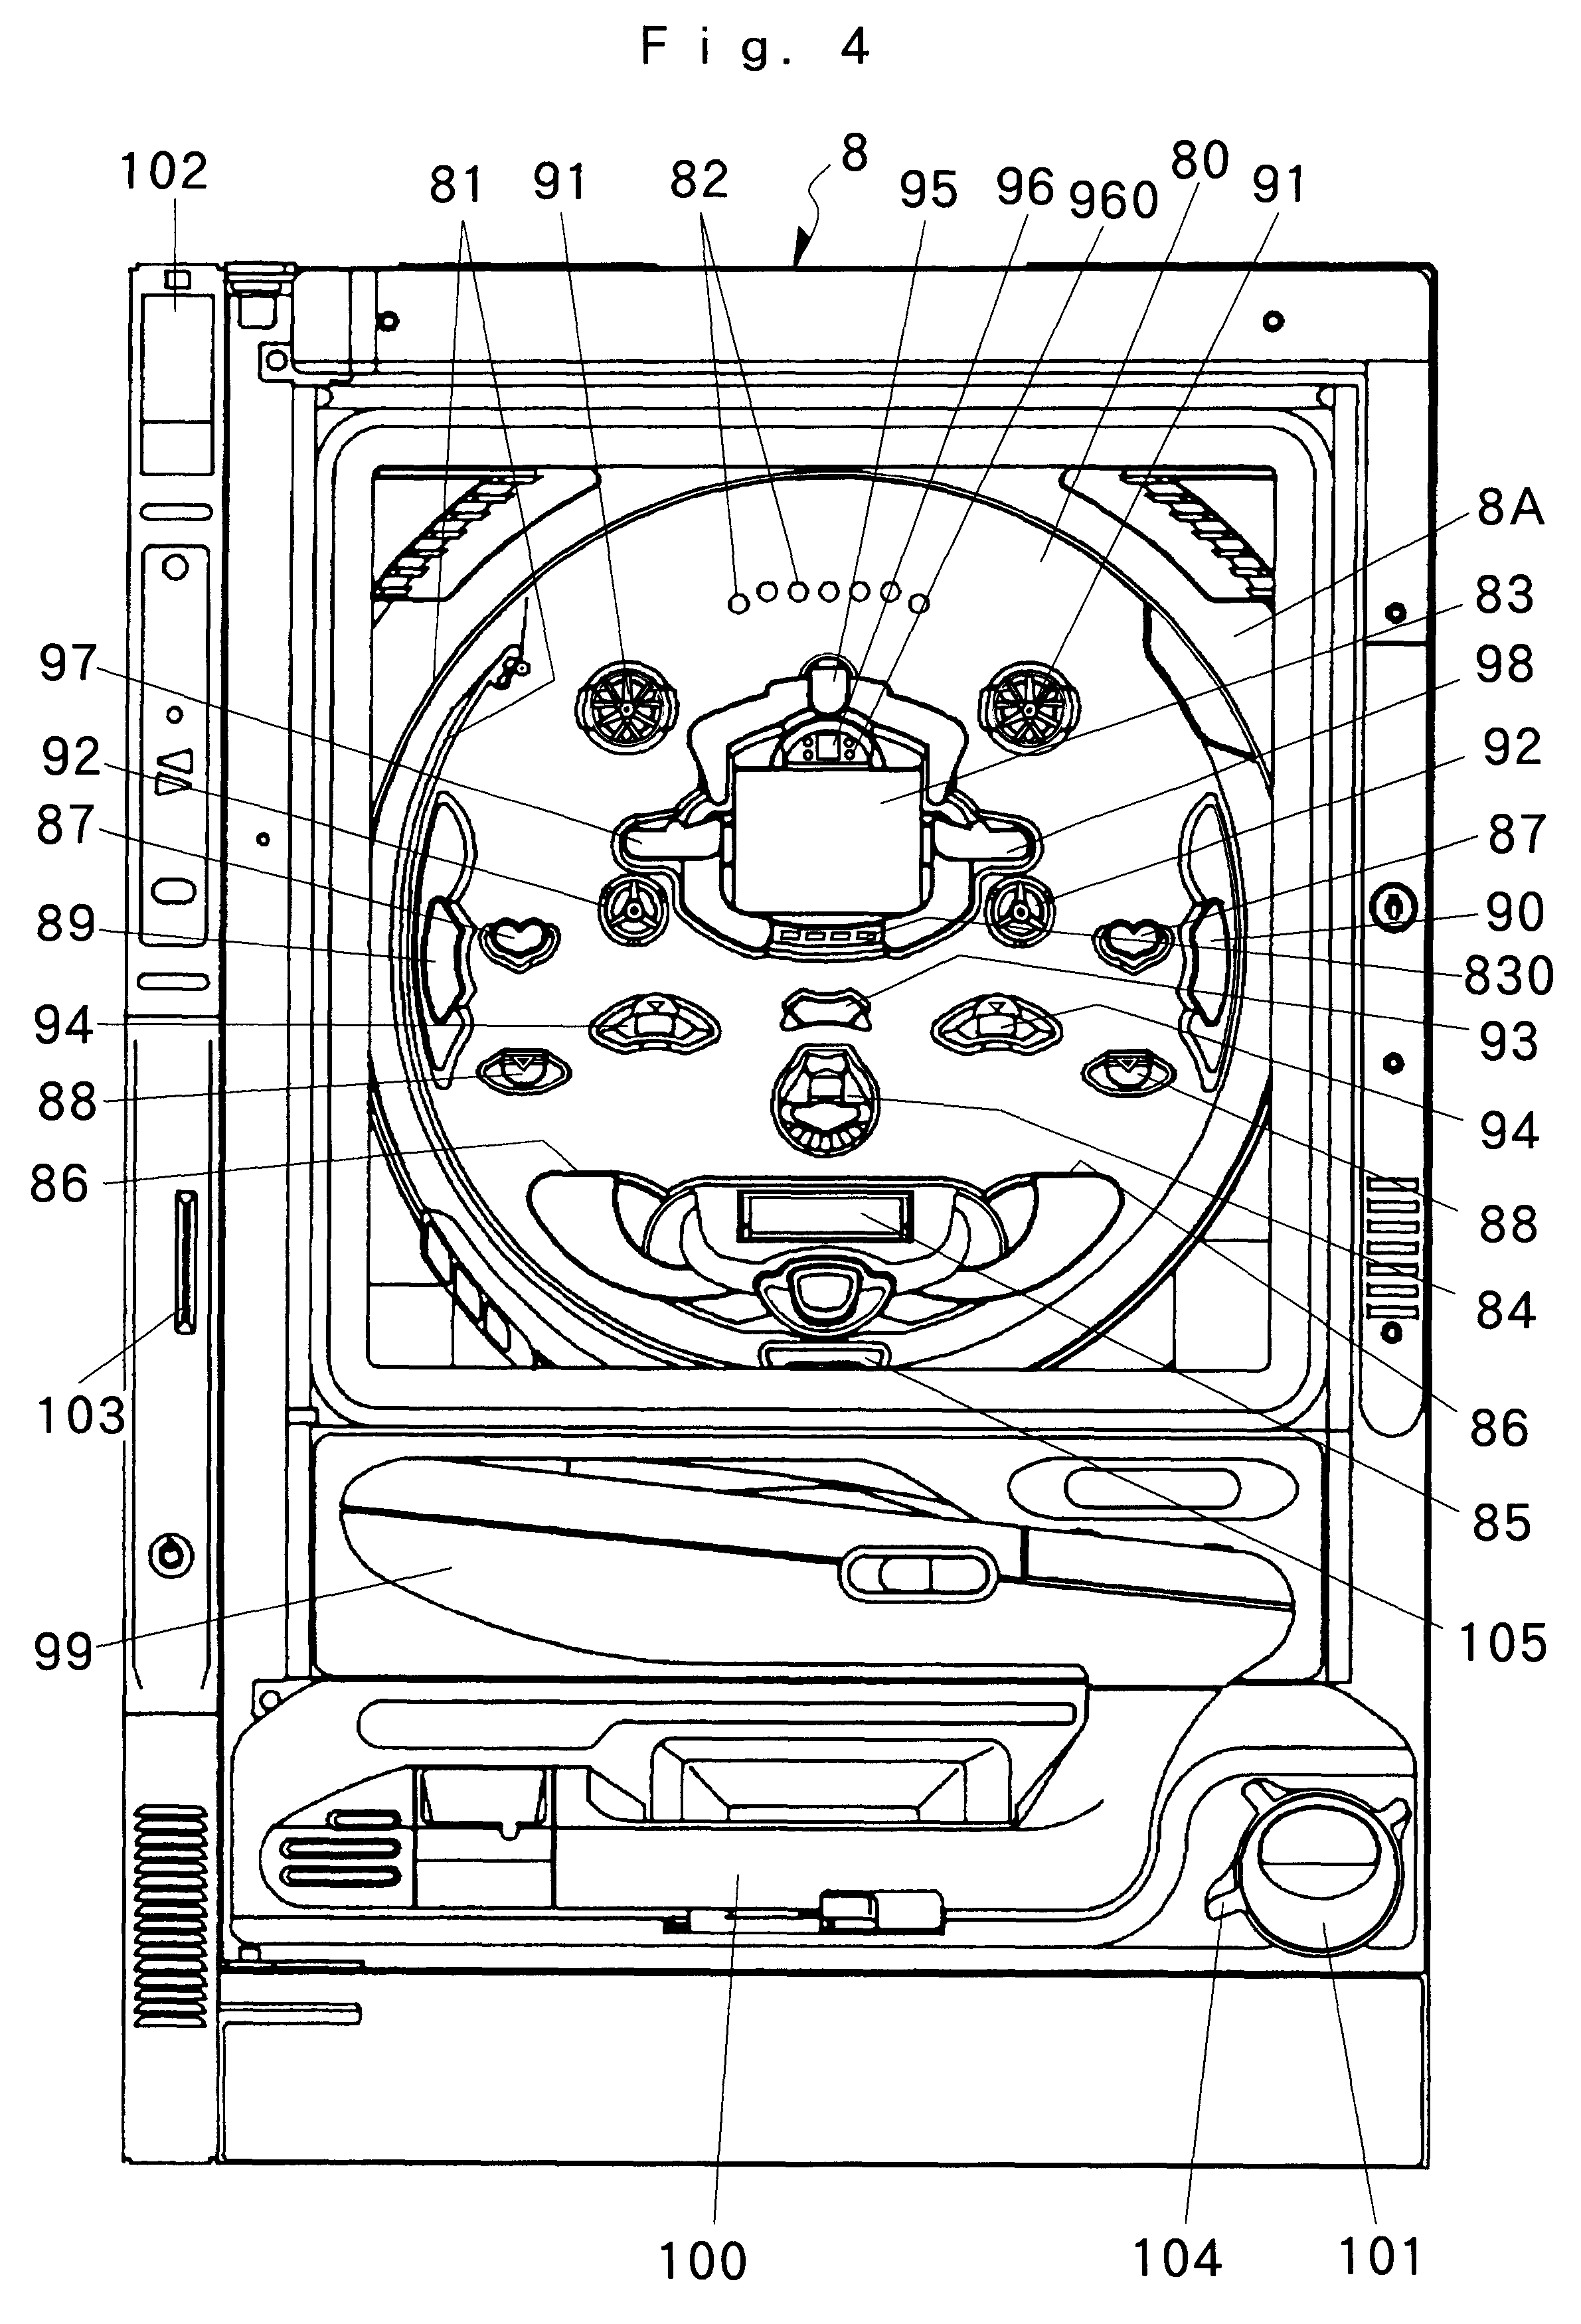 diagram of a pinball machine